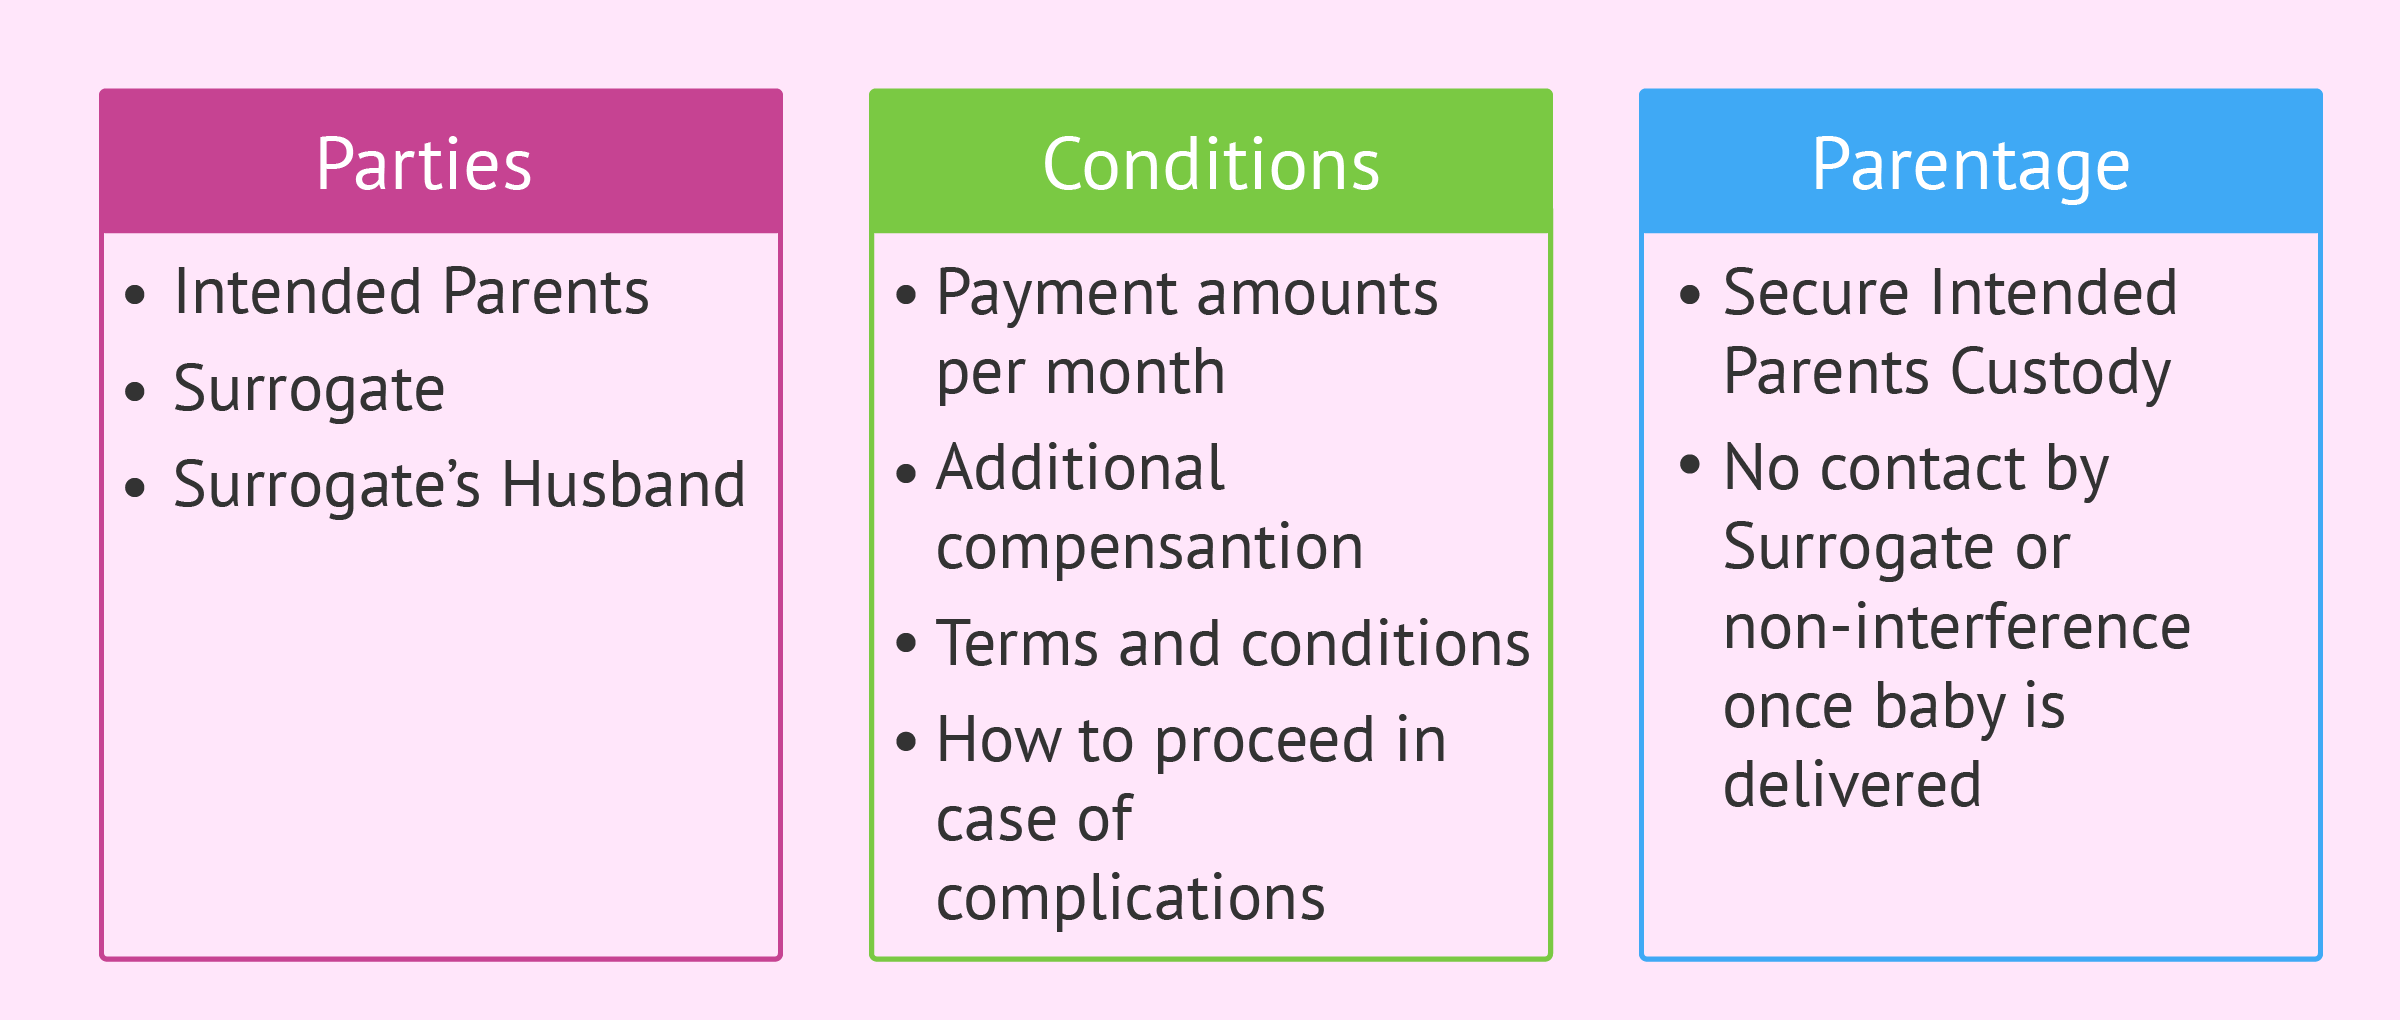 Surrogacy contract: key points